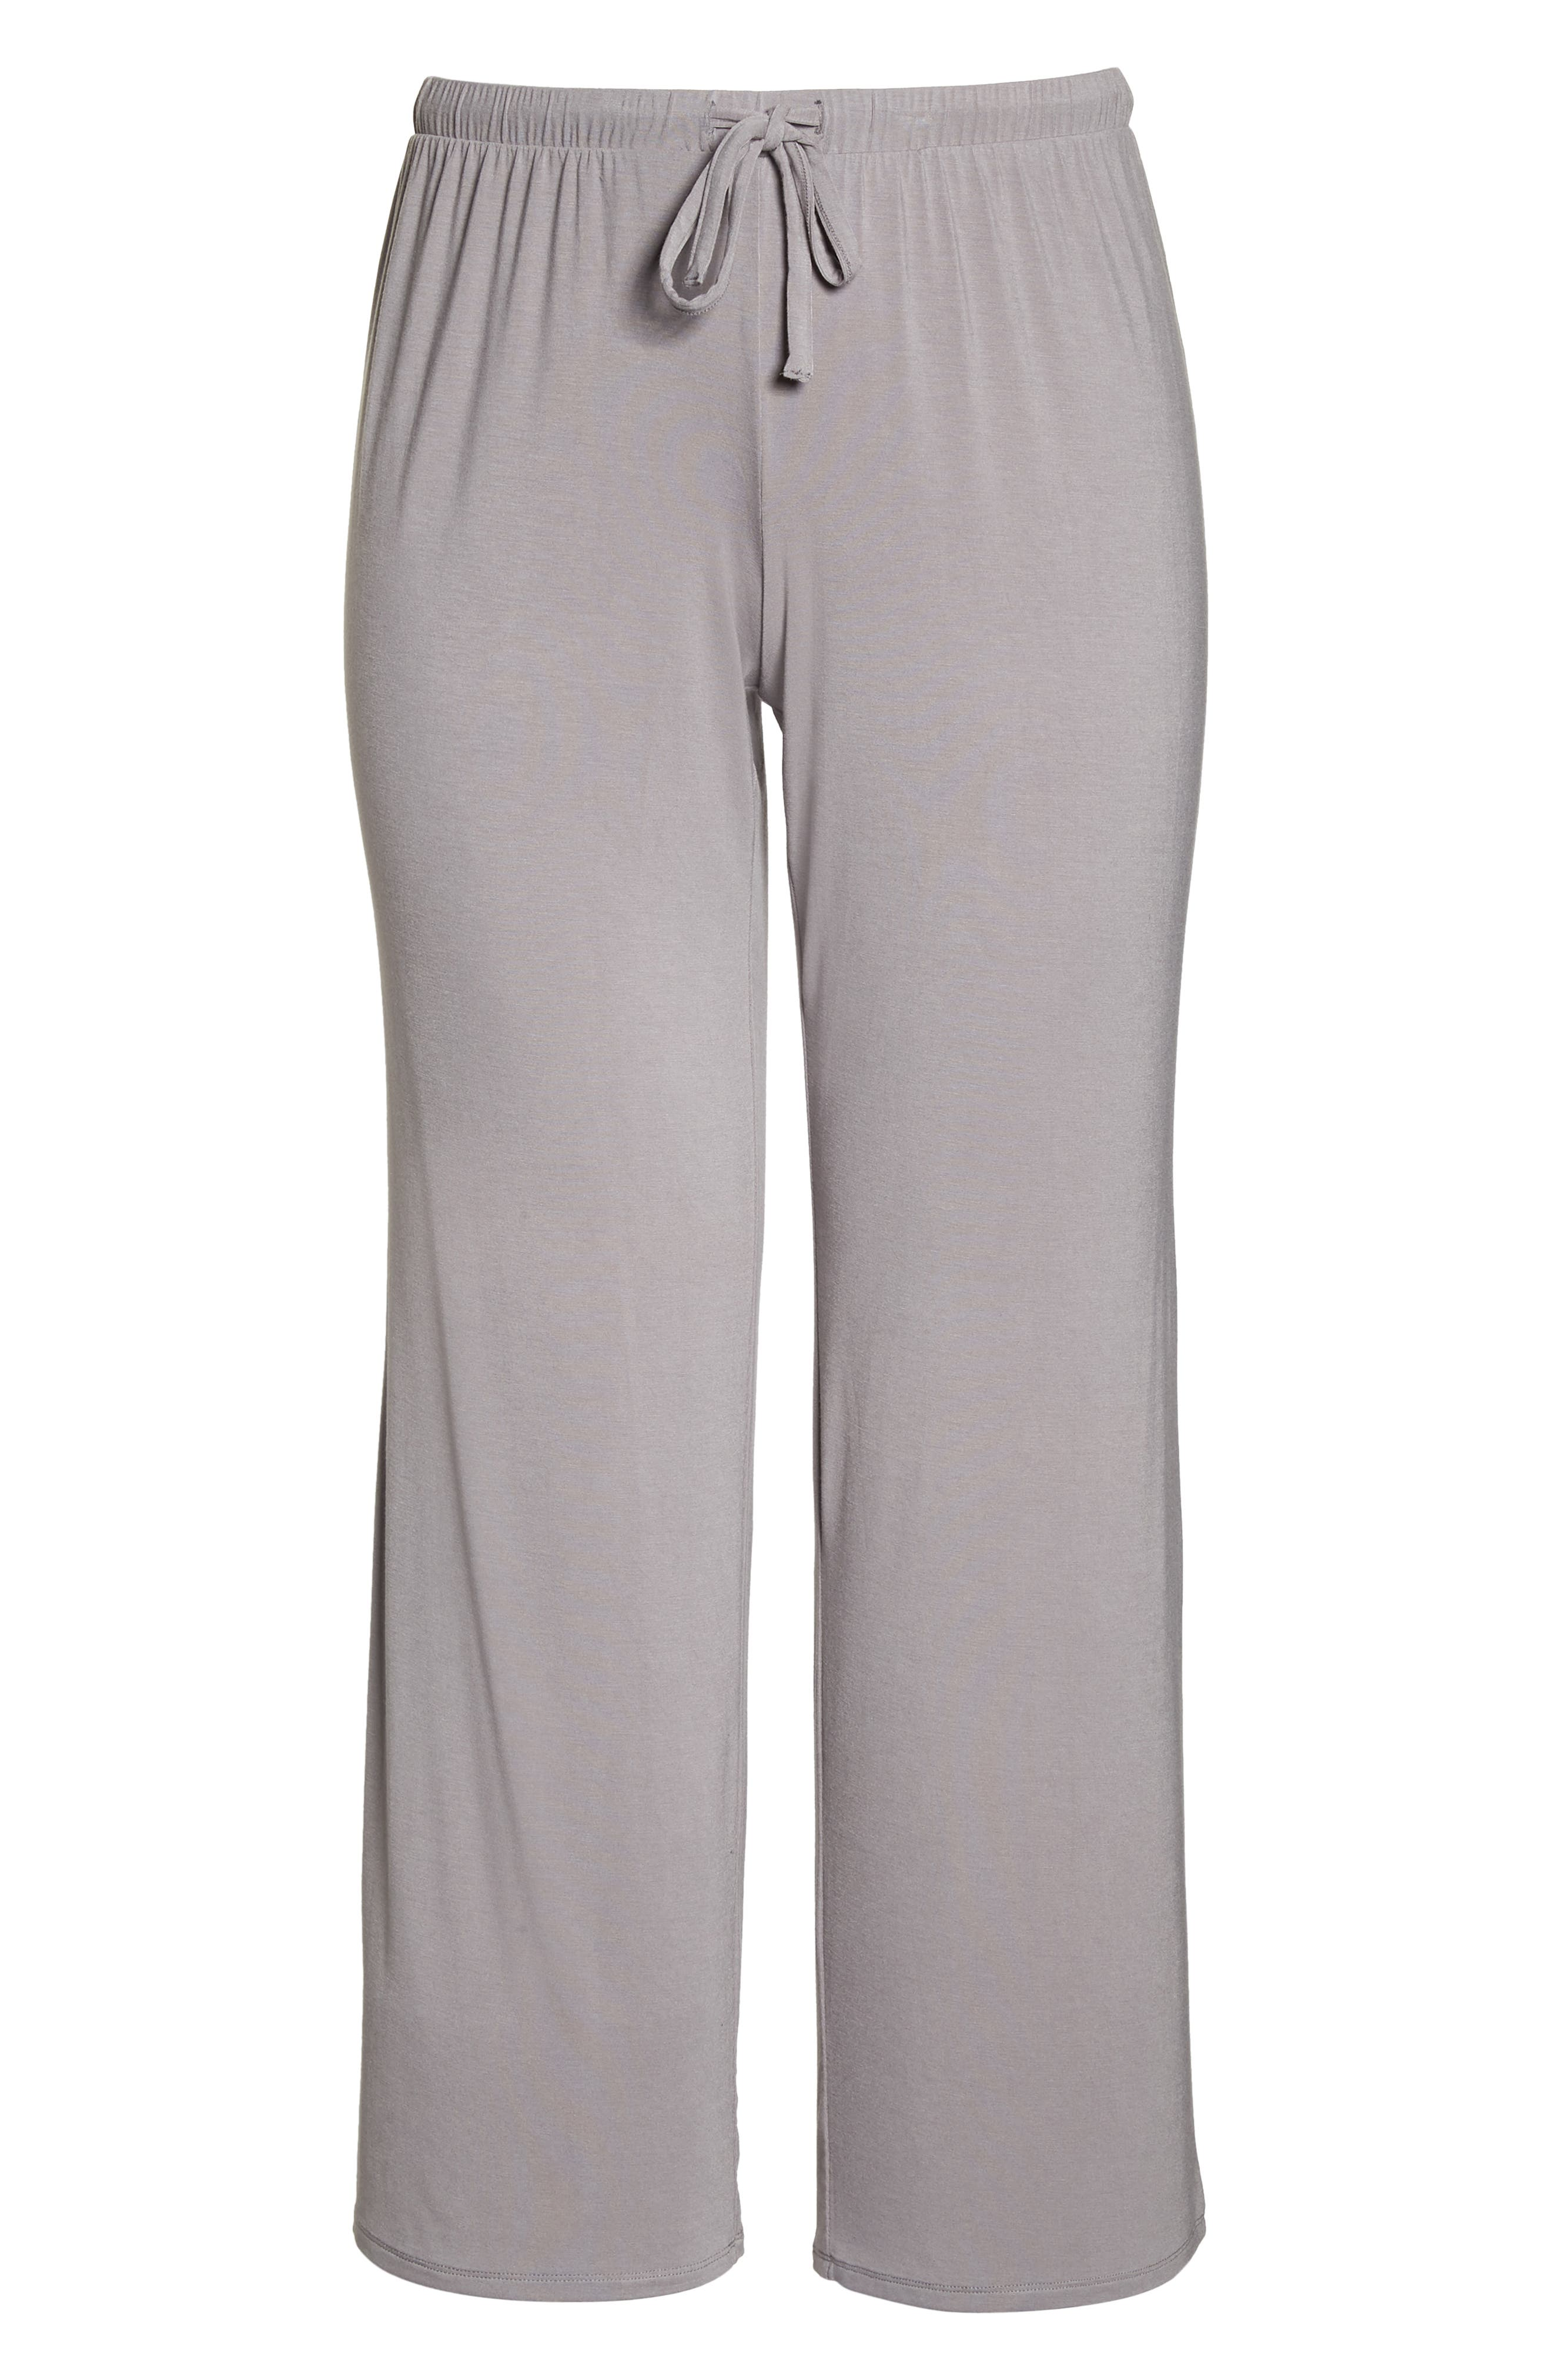 Breathe Lounge Pants,                             Alternate thumbnail 6, color,                             GREY GULL